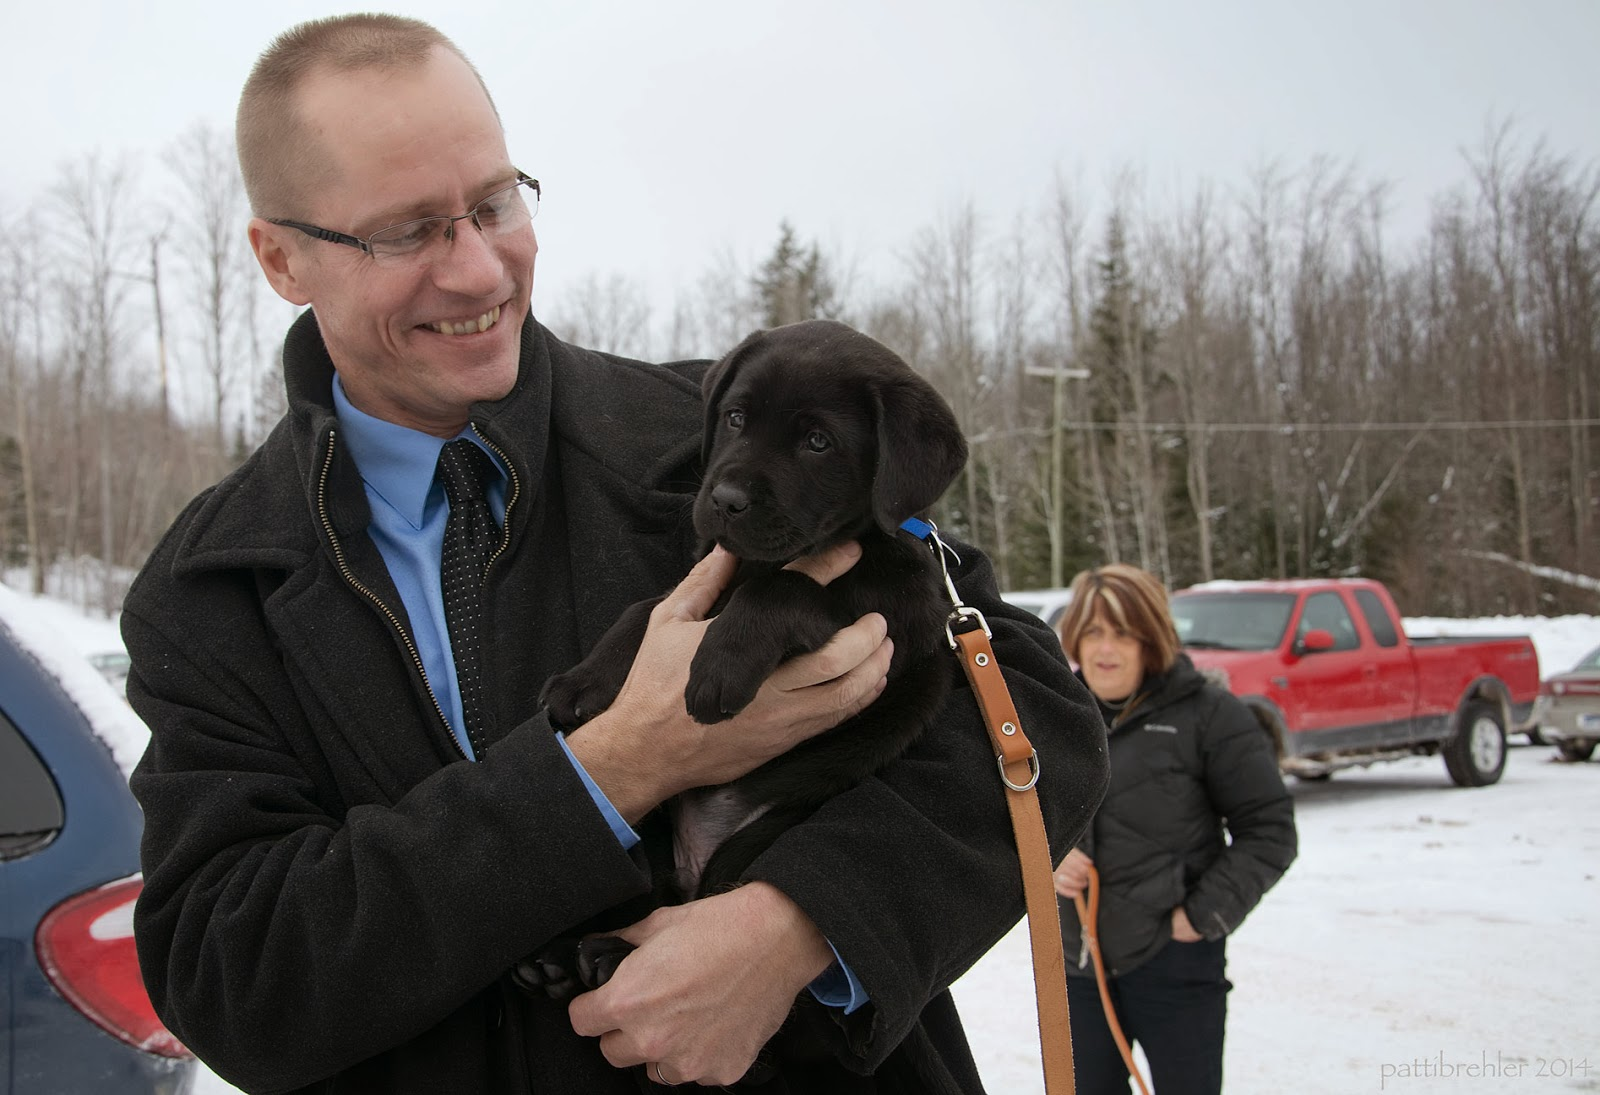 An outside shot in a parking lot (a red truck is in the background on the right) of a man with a buzz cut and glasses, wearing a black coat, is holding a small black lab puppy in his arms. The man is looking at the puppy with a huge smile on his face. A short brown haired woman is in the background behind him.